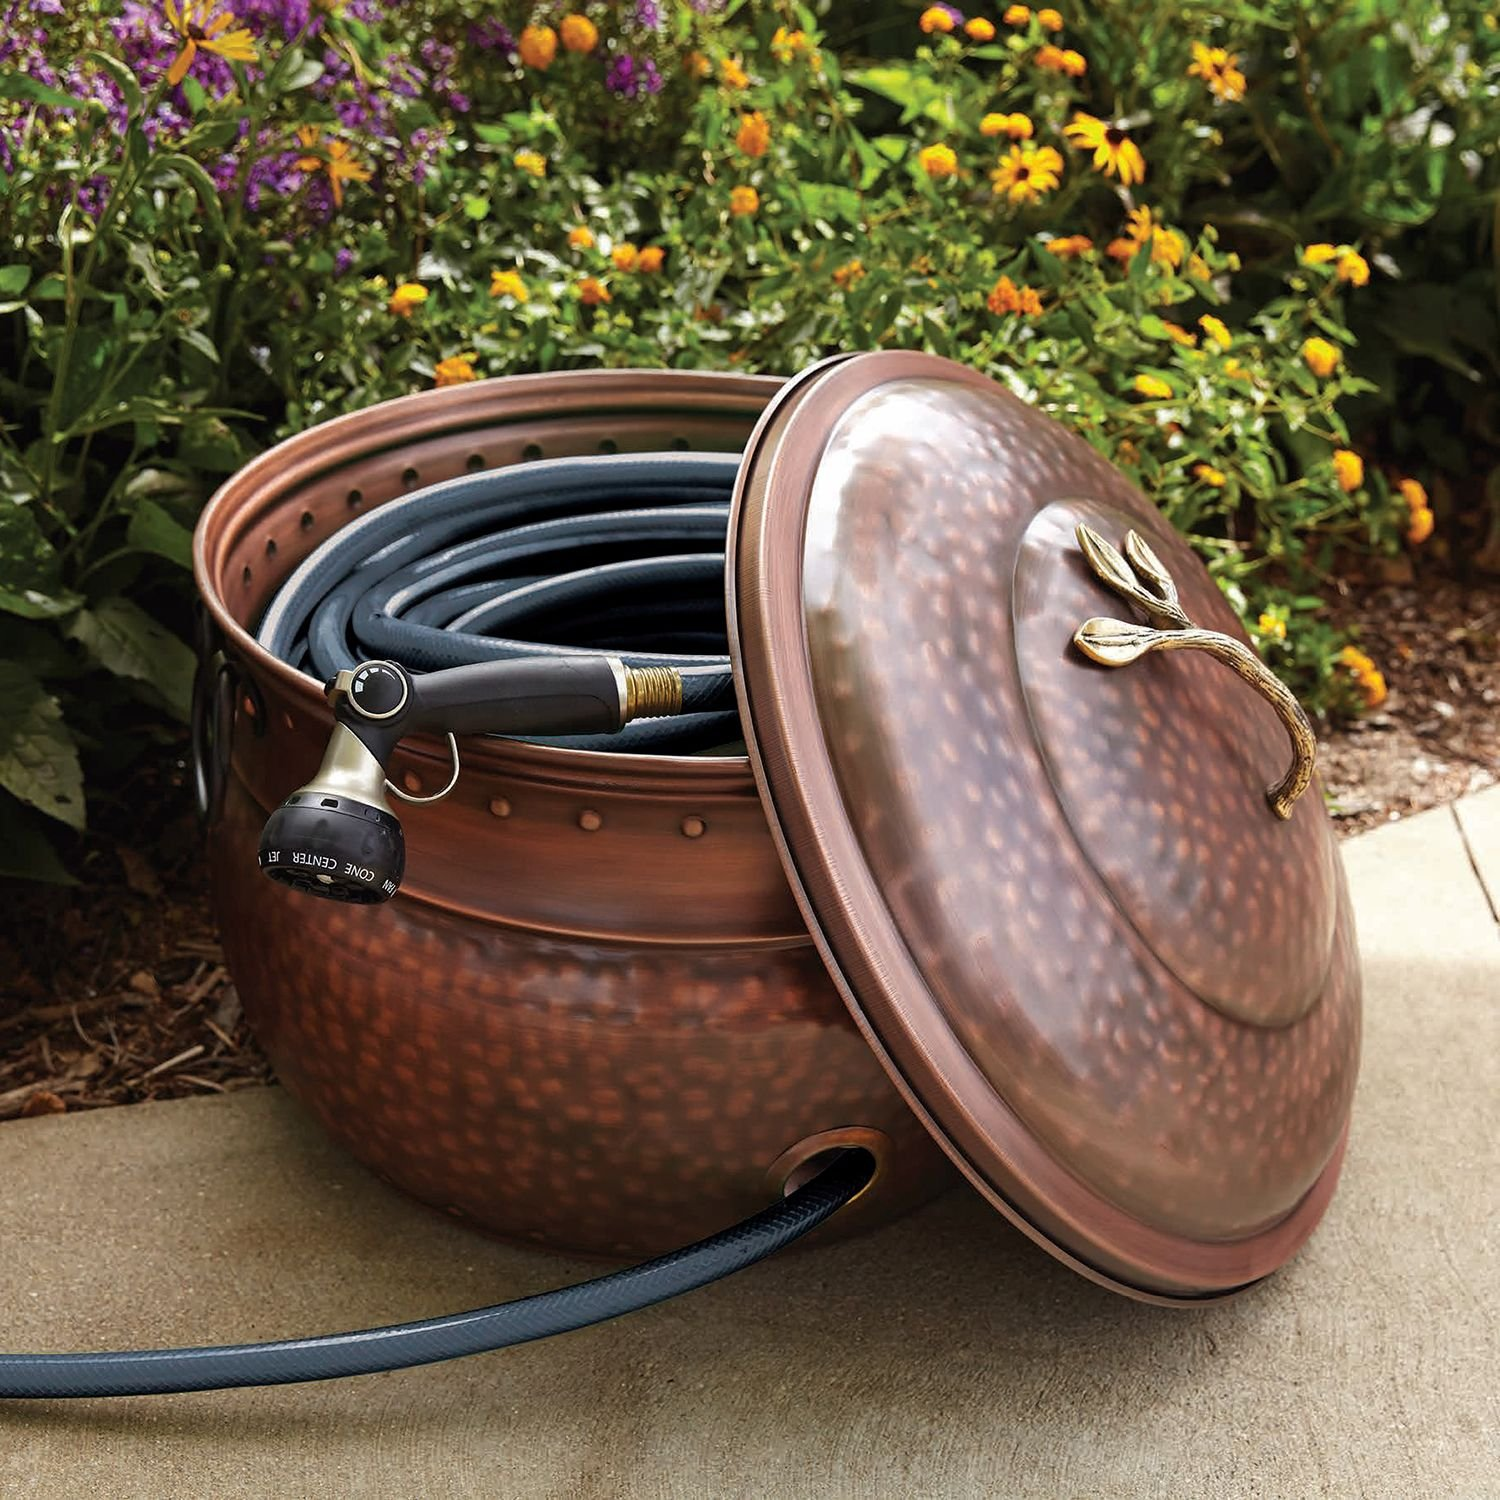 Garden Hose Pot Hider Storage Pots with Lid